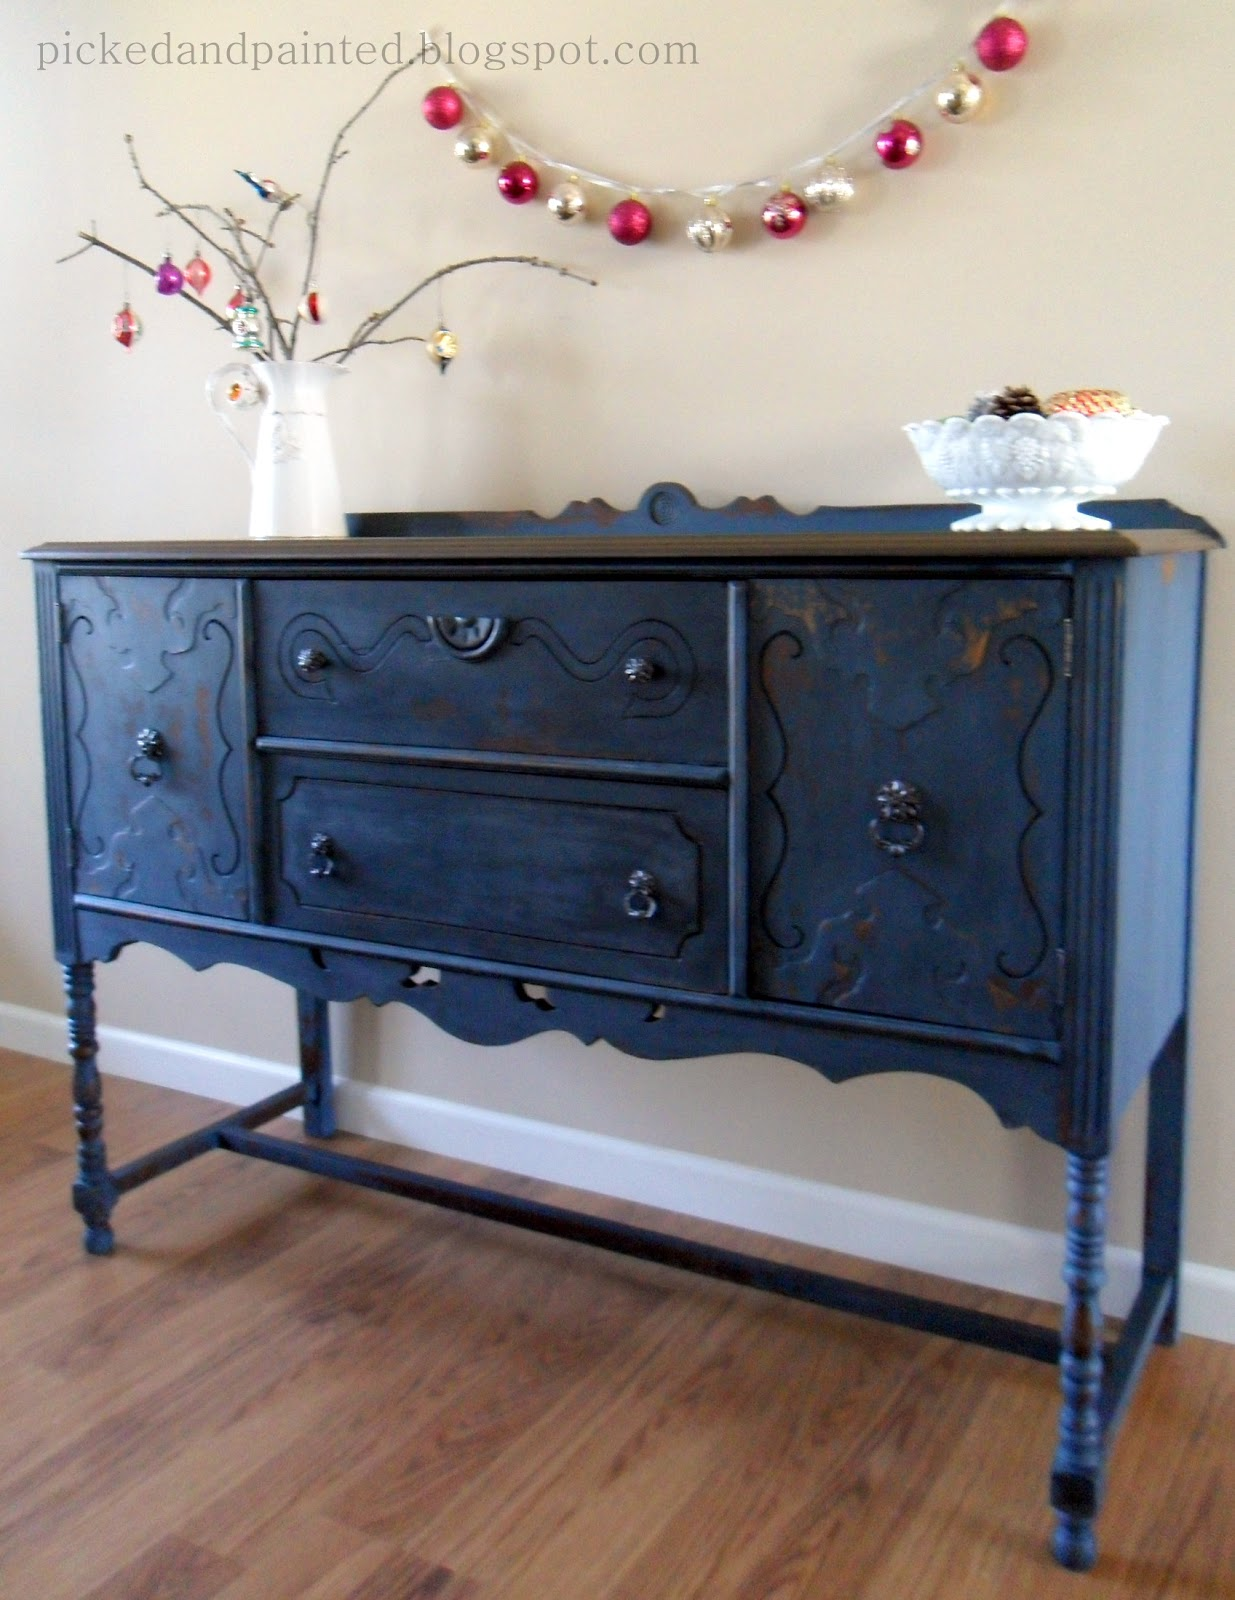 Helen nichole designs soldier blue buffet for Painted buffet sideboard